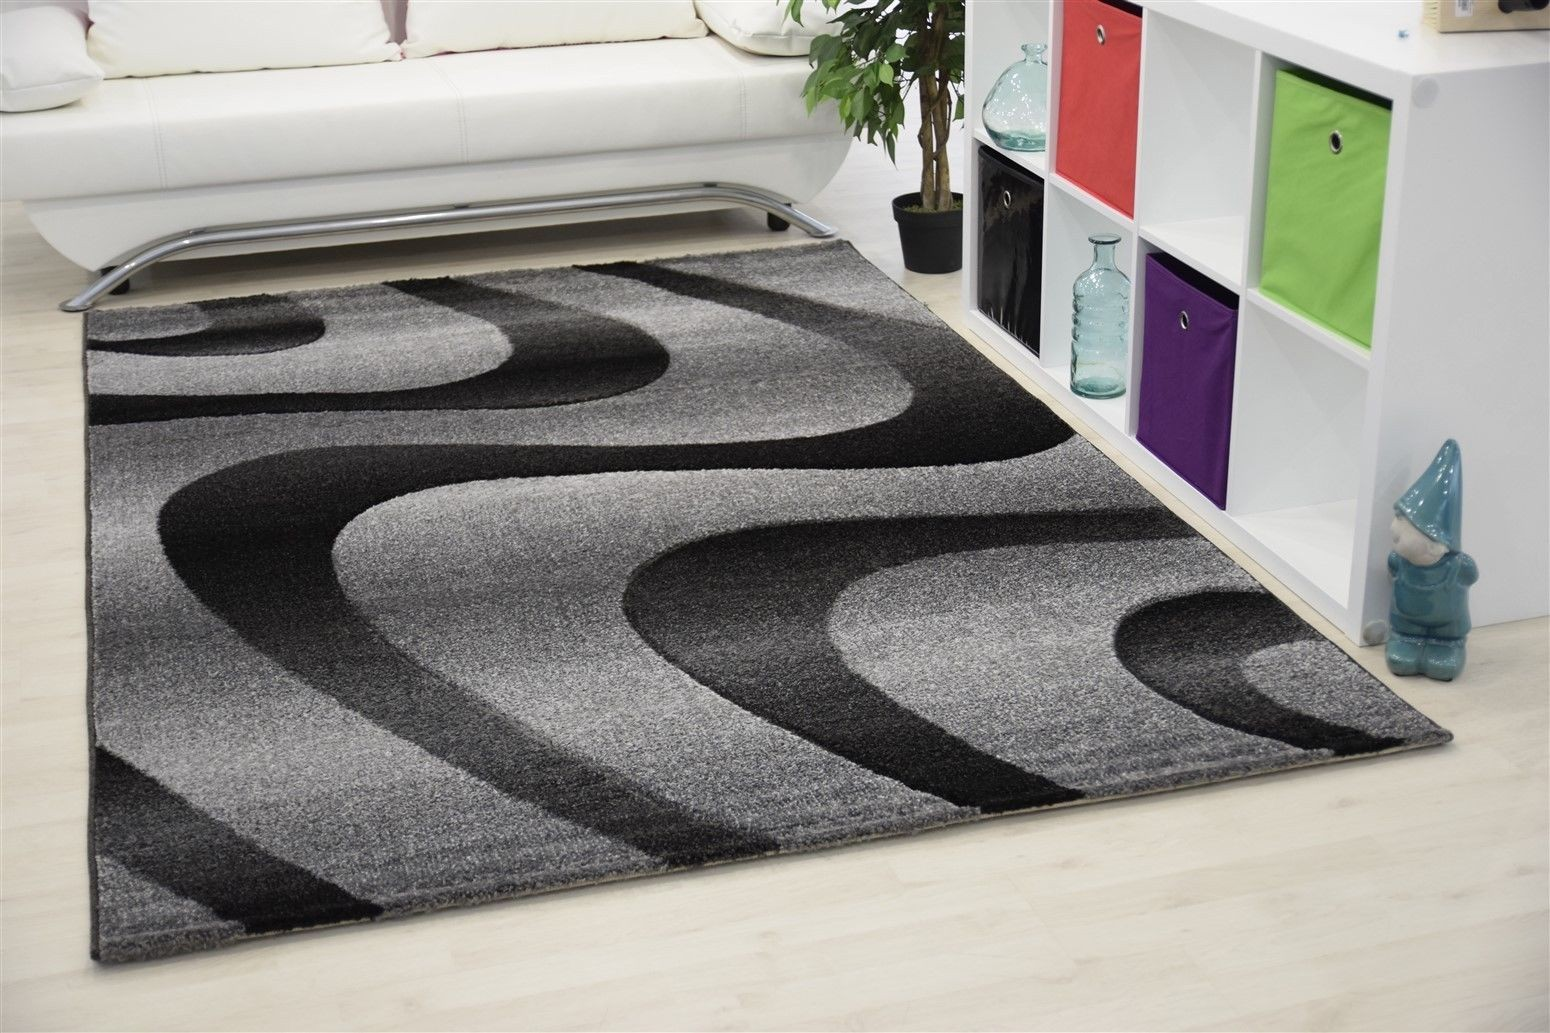 Tapis salon moderne pas cher maison design for Tapis salon but